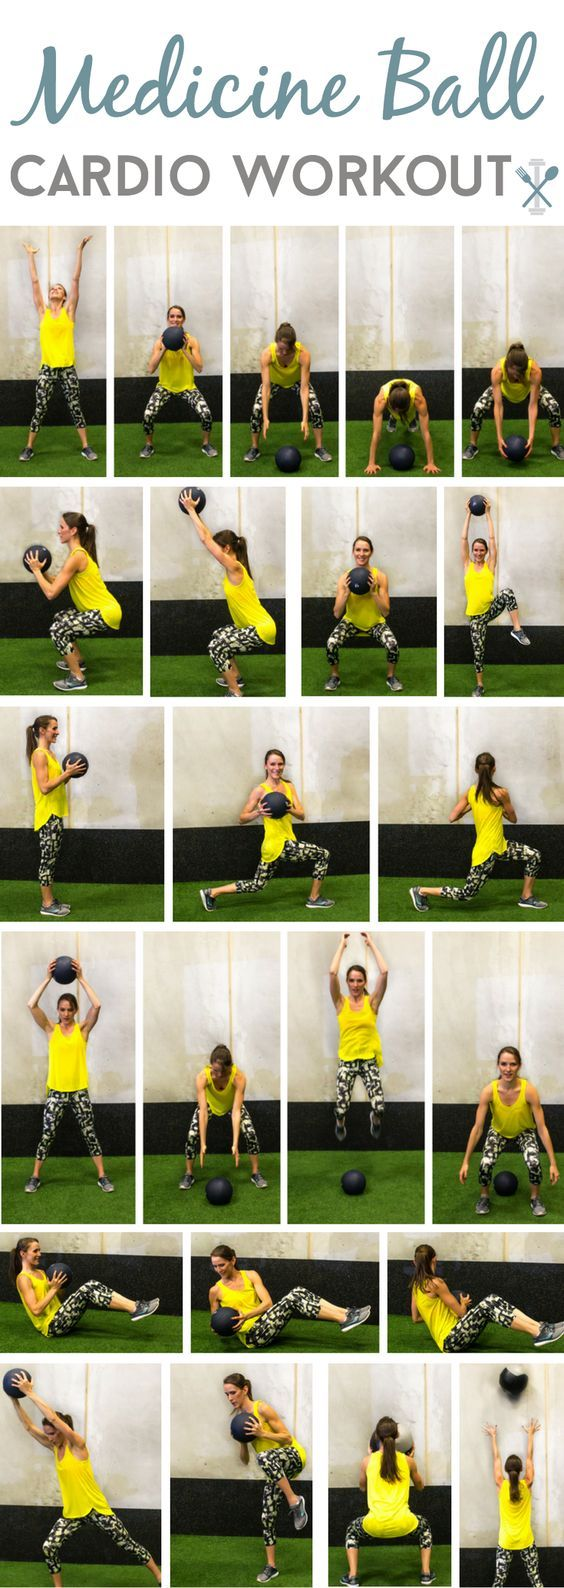 Total-body medicine ball workout - cardio and muscle sculpting session in just over 30 minutes!